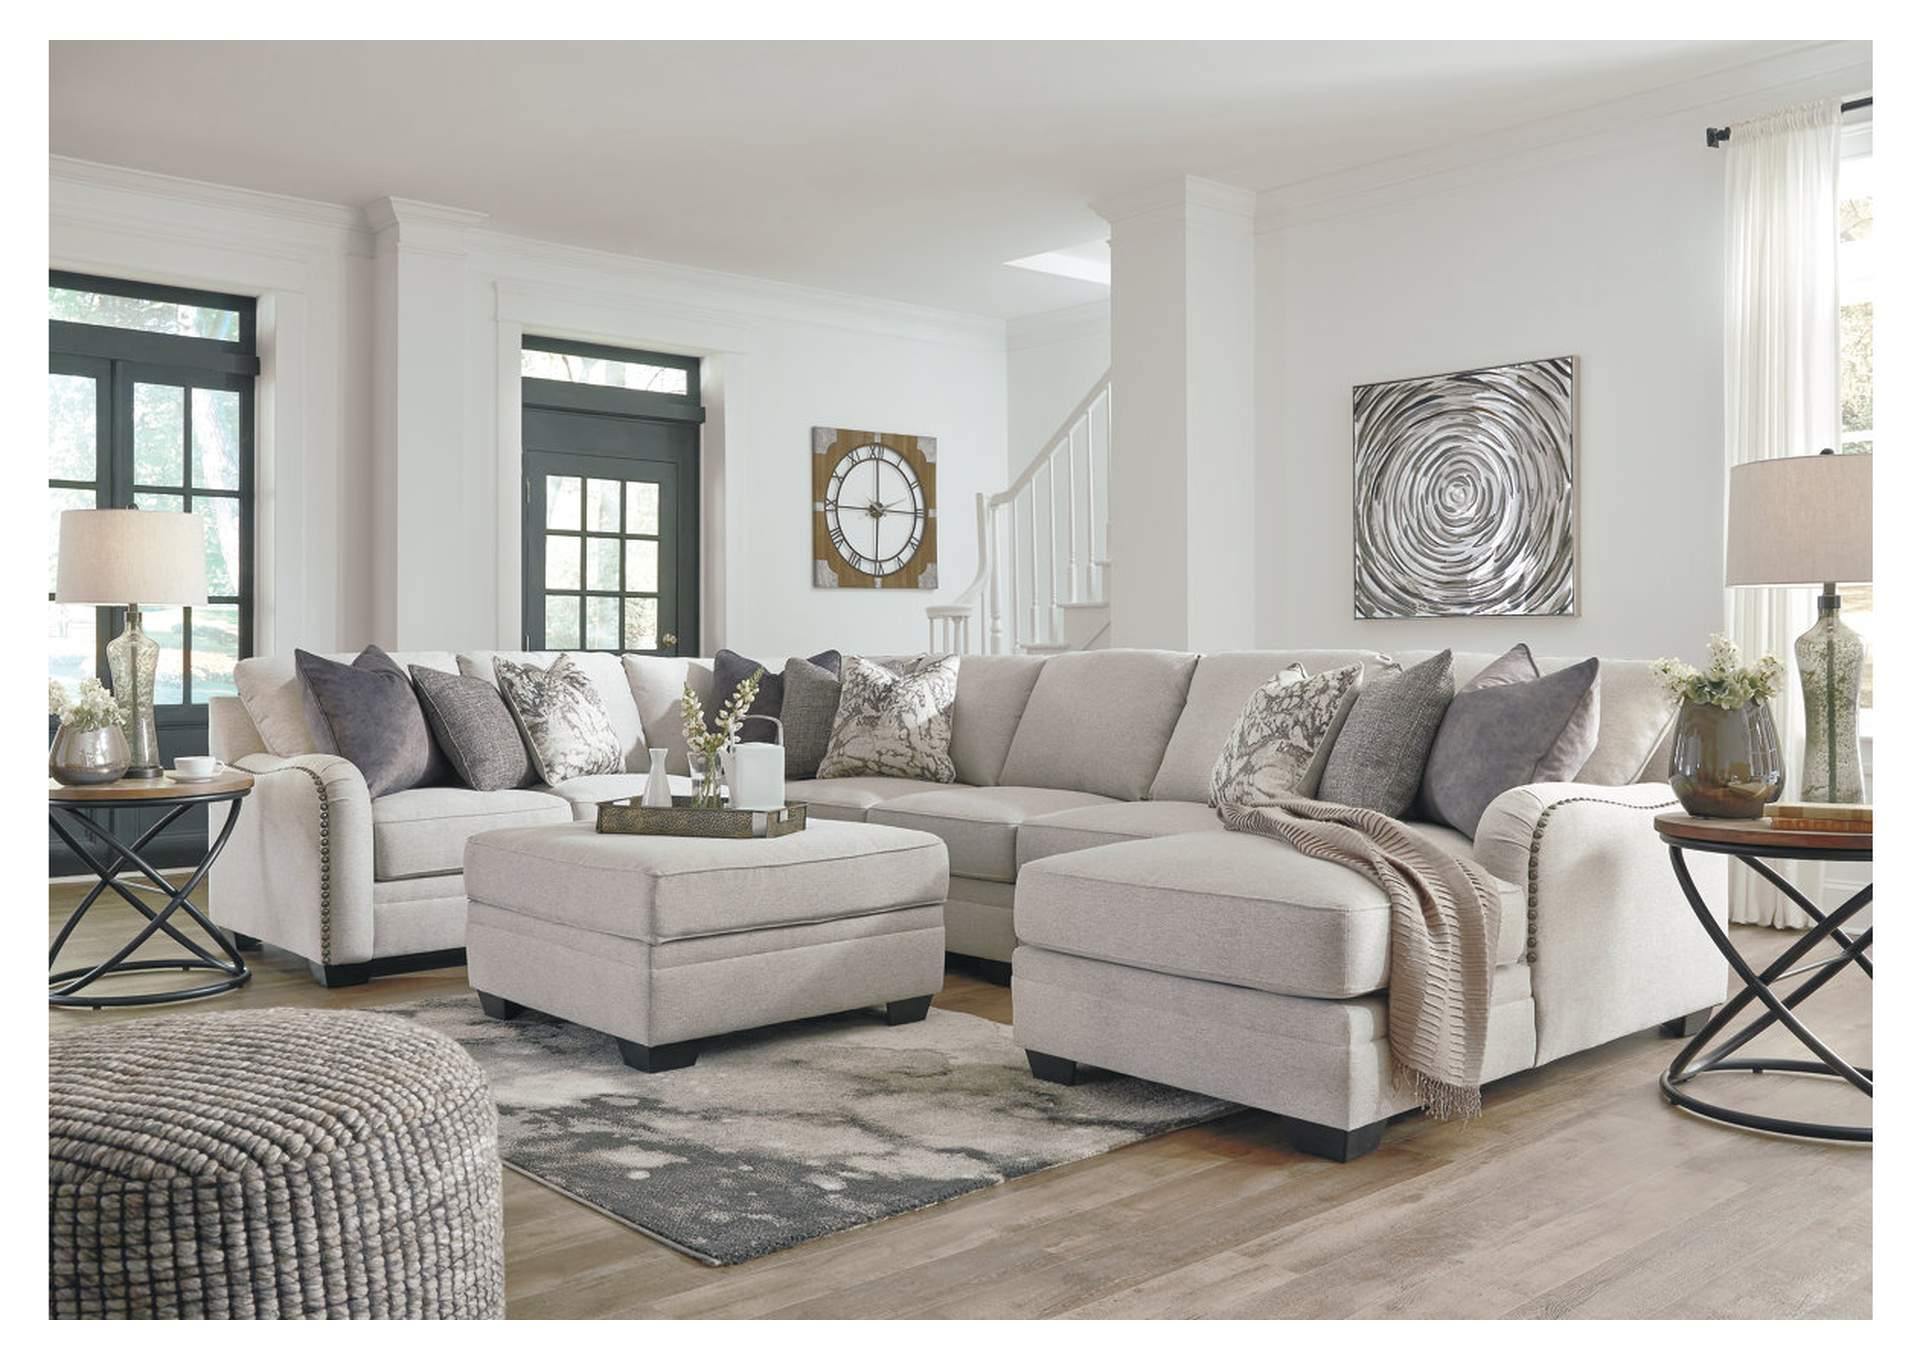 Dellara Chalk Sectional,Signature Design By Ashley